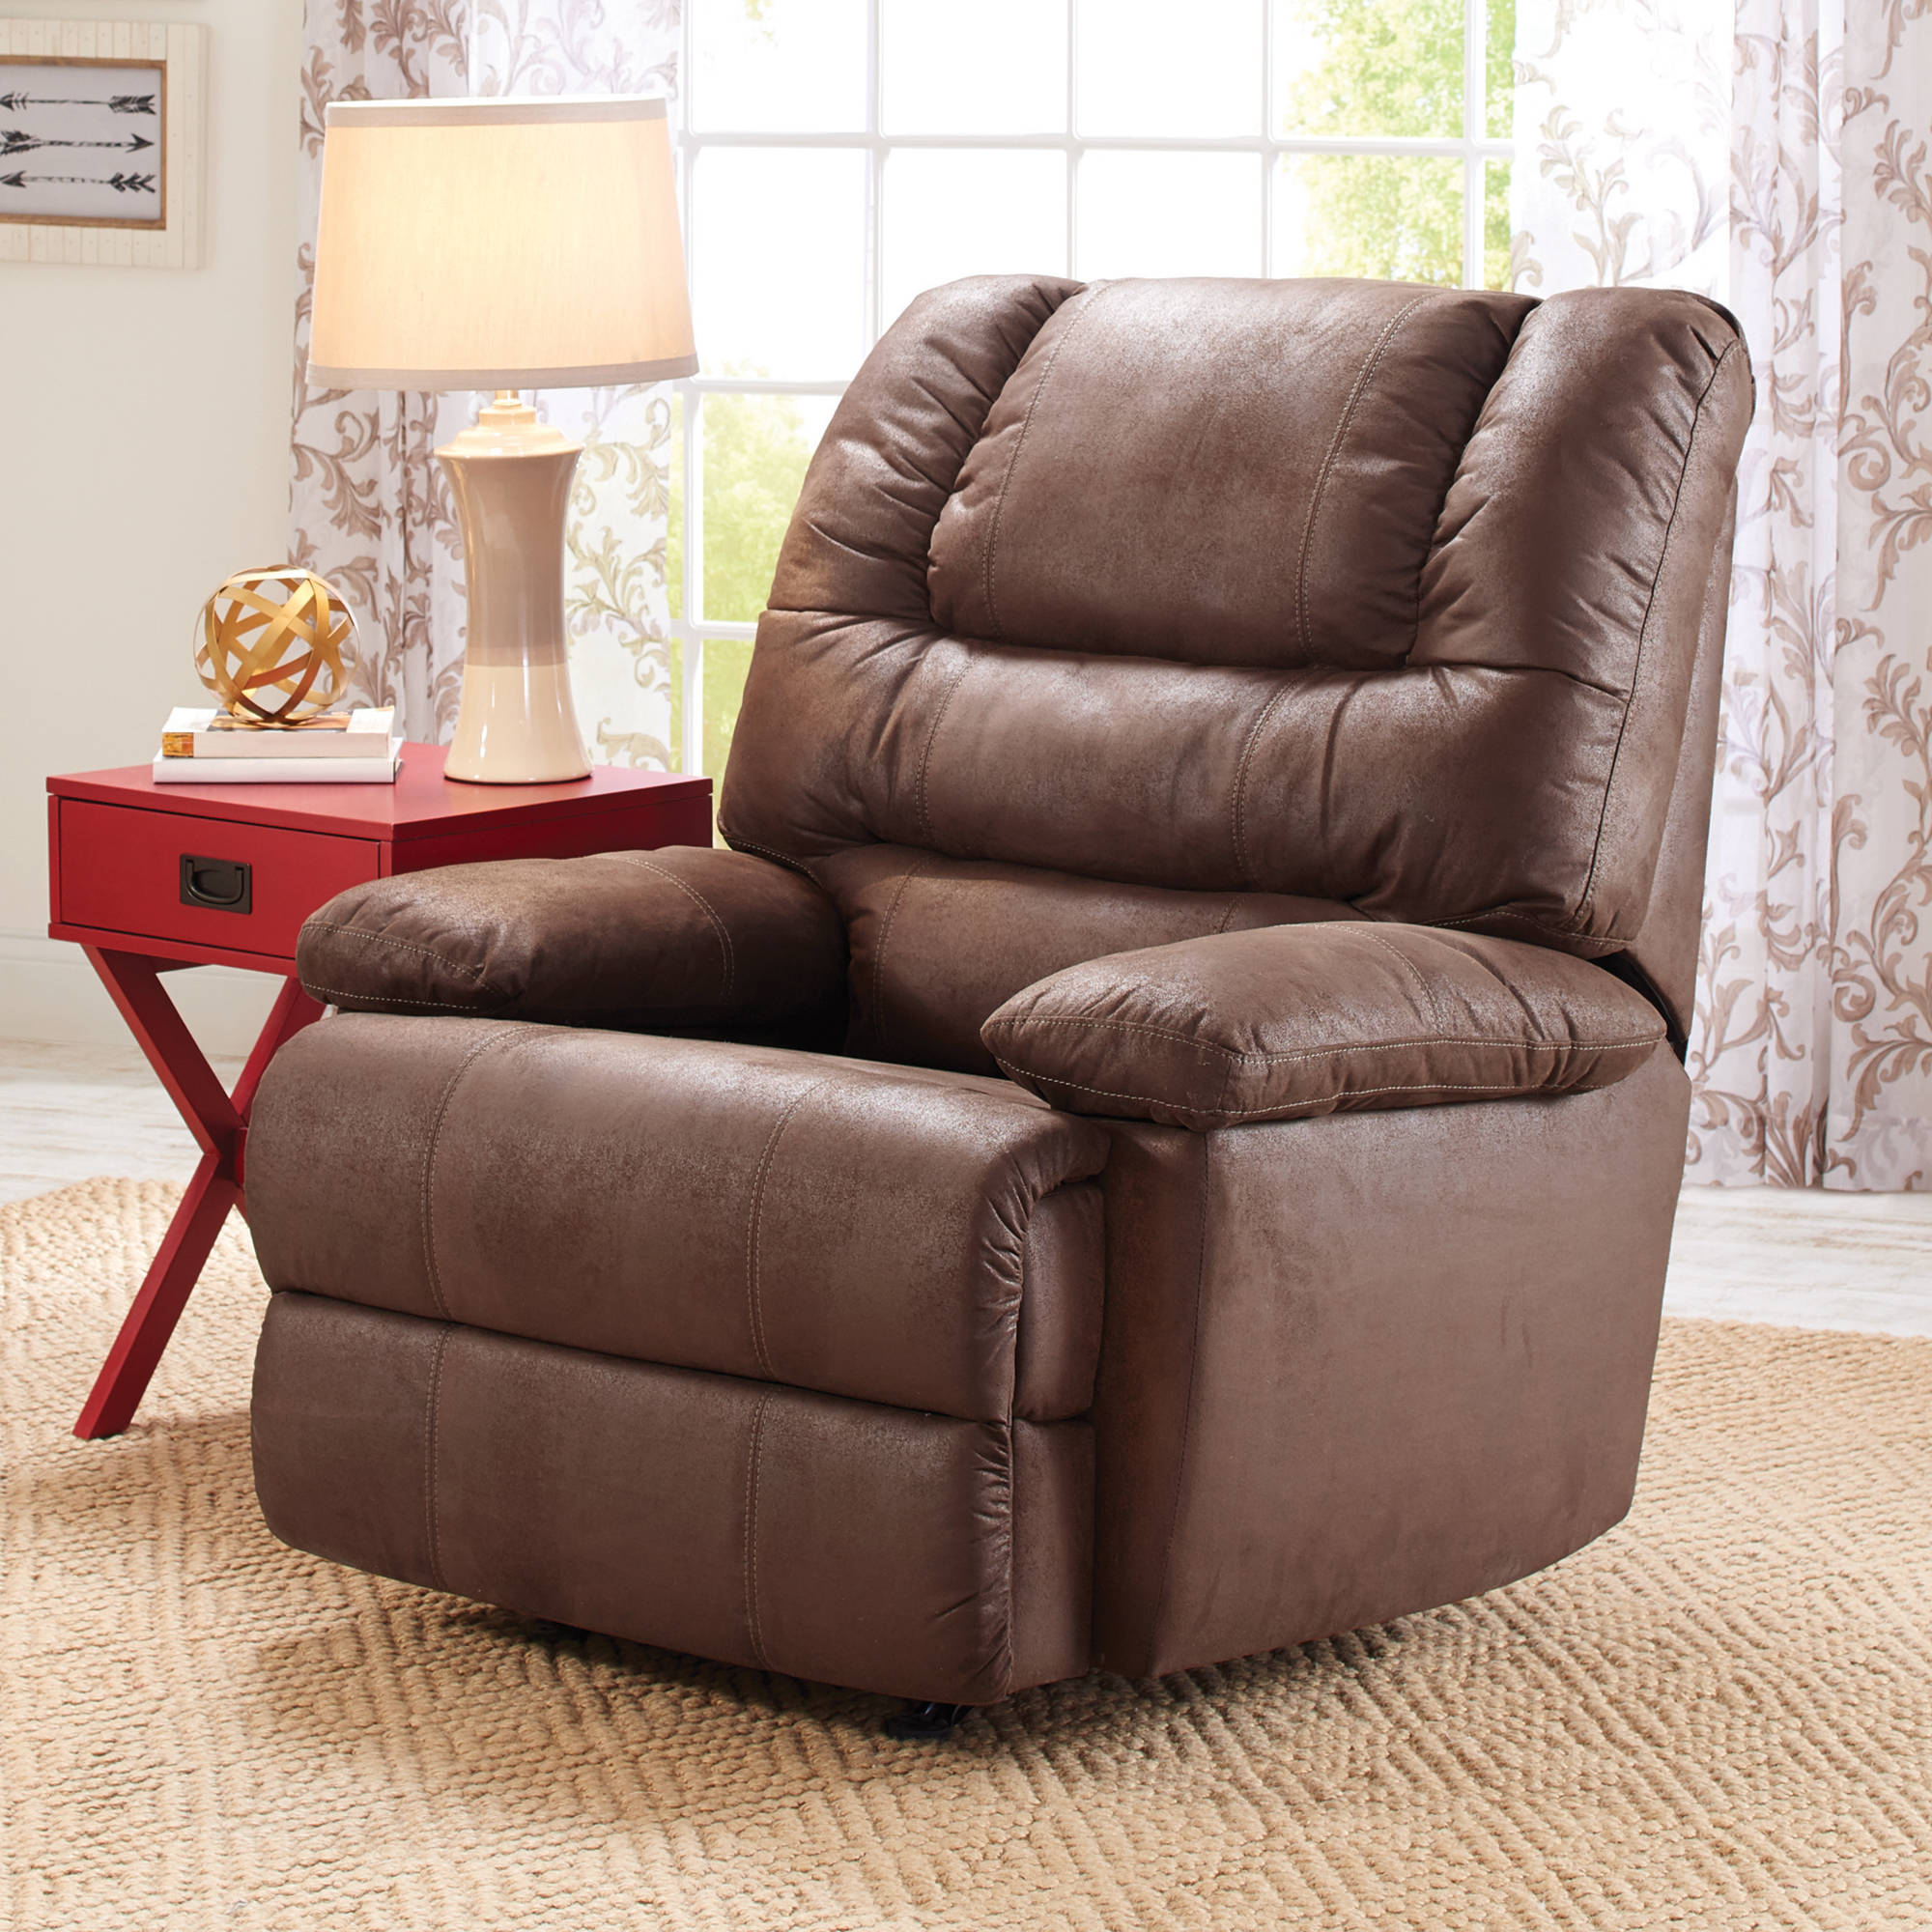 Awesome Better Homes And Gardens Deluxe Recliner   Walmart.com